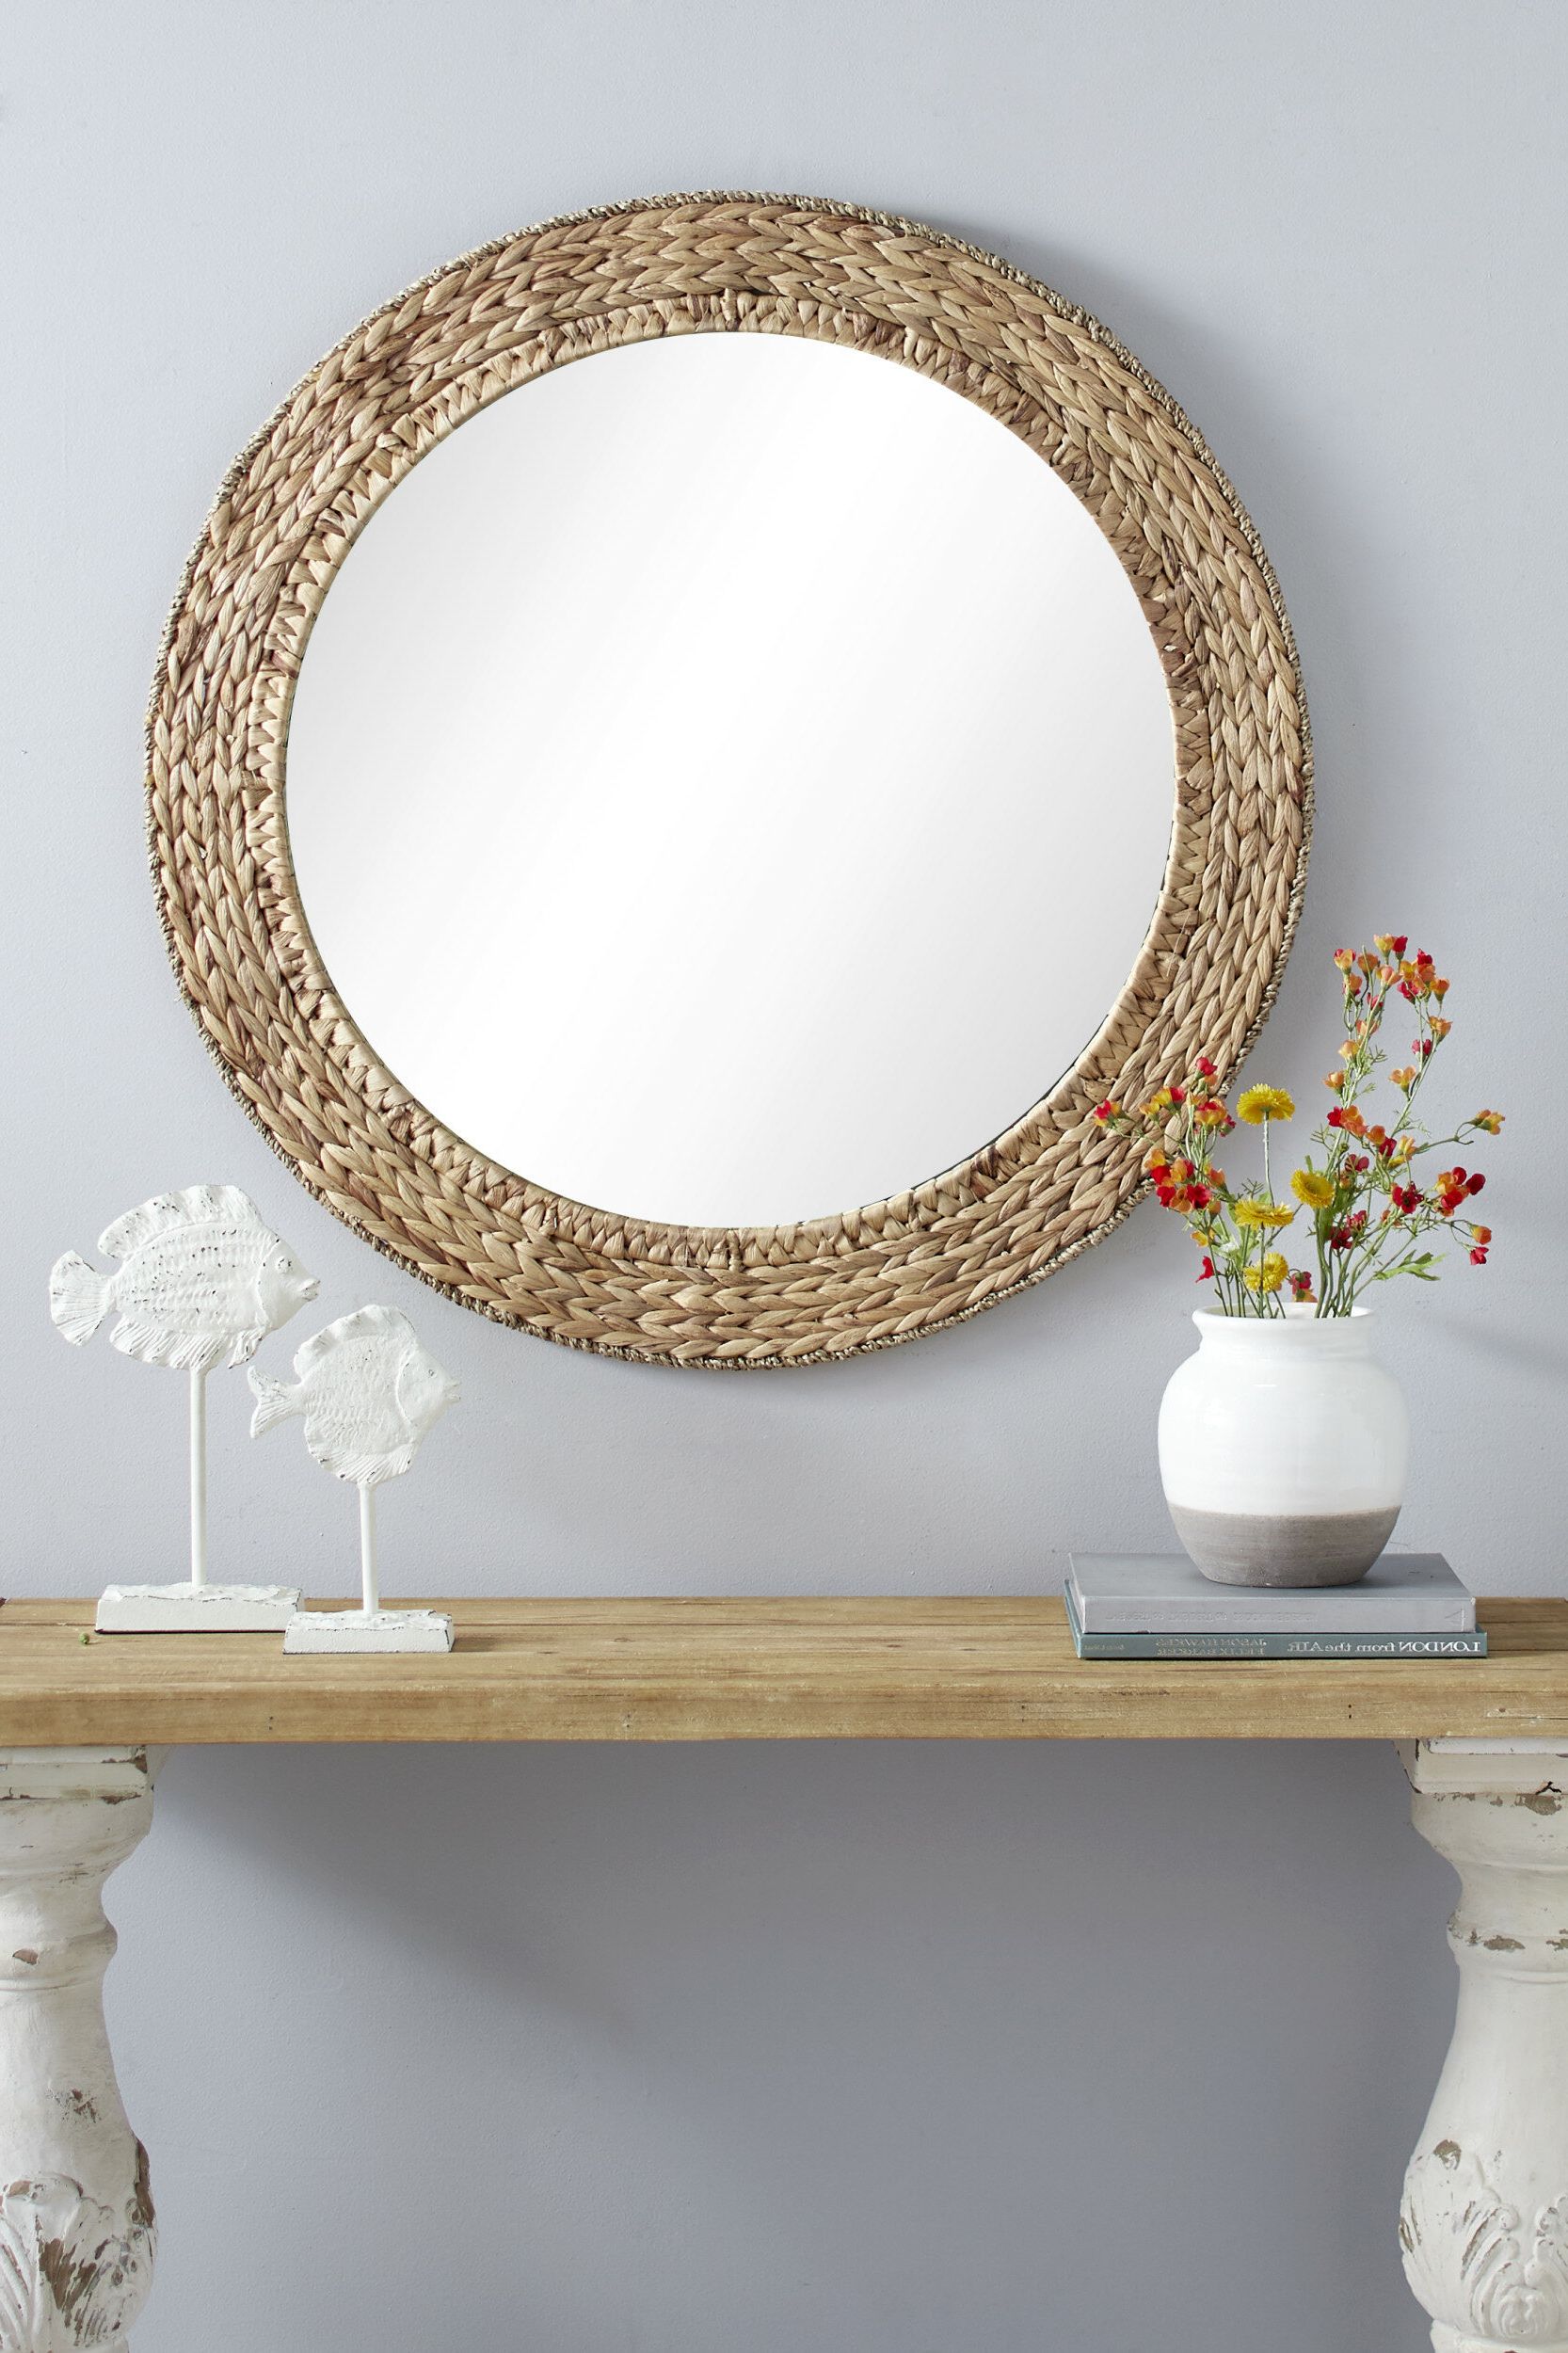 Most Current Chiara Round Handmade Wicker Rustic Accent Mirror Inside Mcnary Accent Mirrors (View 11 of 20)